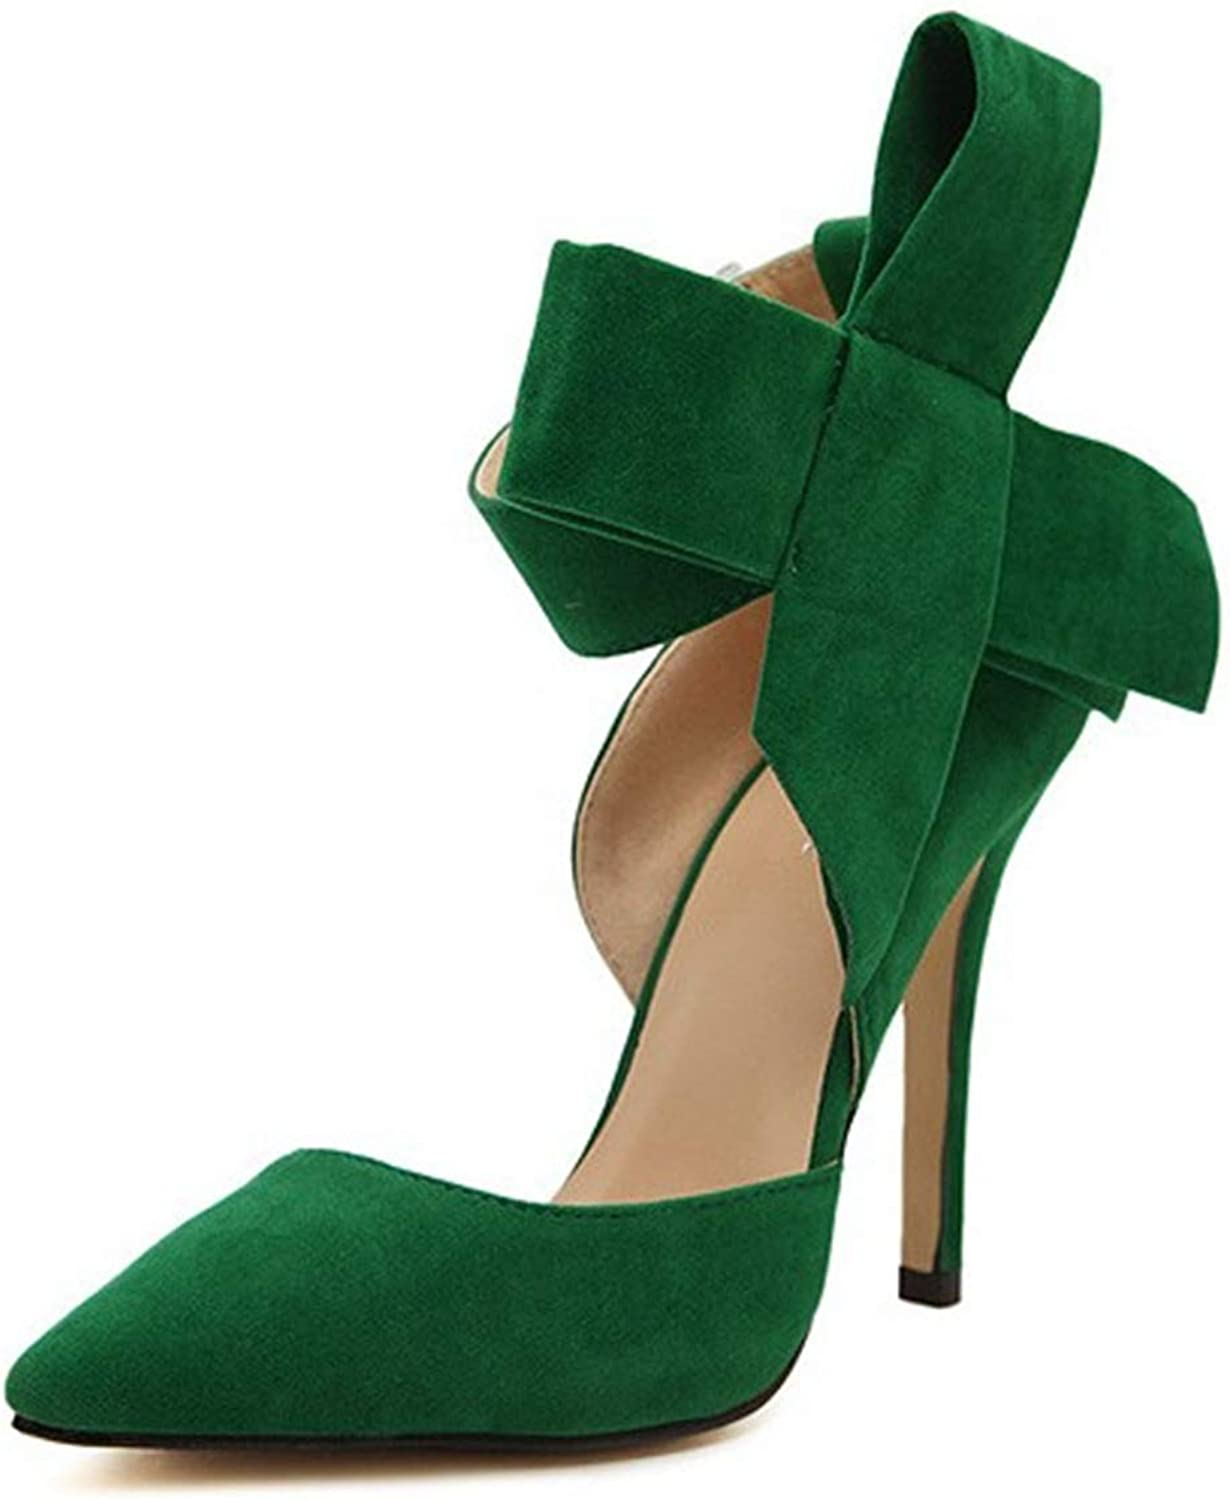 Kyle Walsh Pa Women's Pumps Pointed Toe Stiletto Bow-Knot Ankle Strap Ladies Stylish High-Heeled shoes